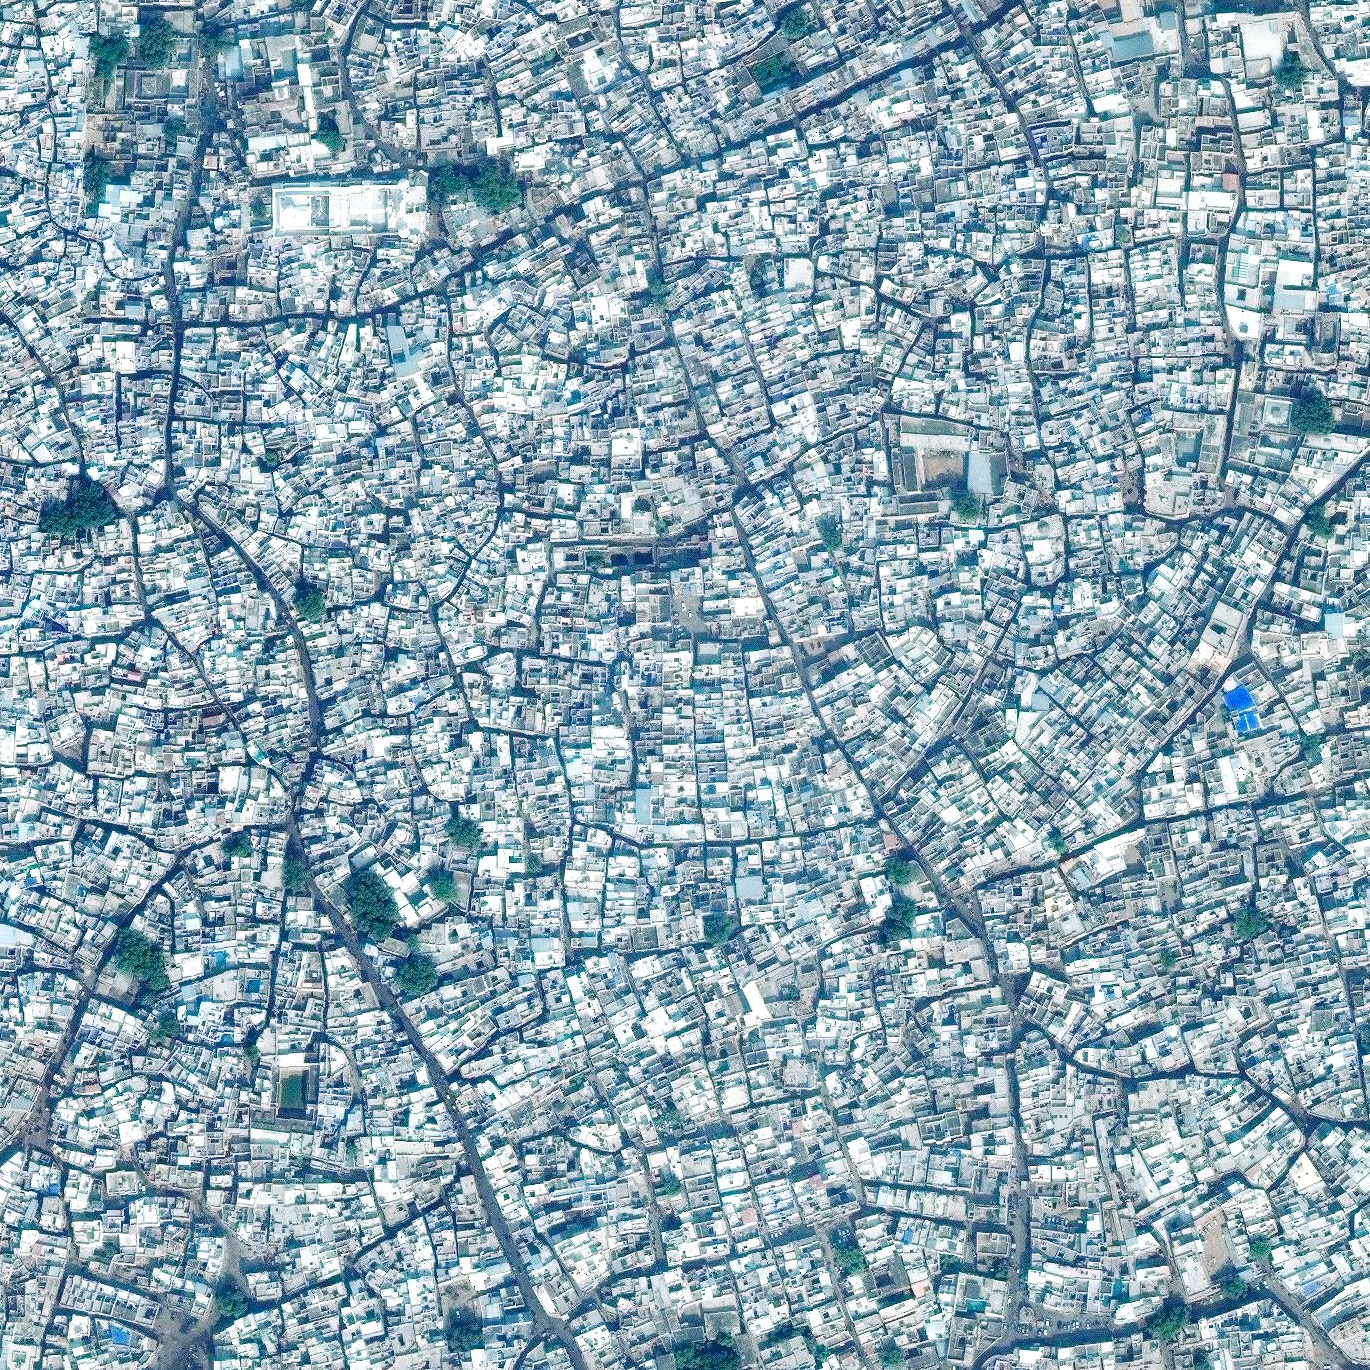 """8/7/2015   Jodhpur   Jodhpur, India  26.29784°N, 73.01842°E    Jodhpur, India is home to more than one million residents, making it the second largest city in the state of Rajasthan. Jodhpur is often referred to as the """"Blue City"""" due to the vivid, painted houses that can be seen throughout its urban area."""